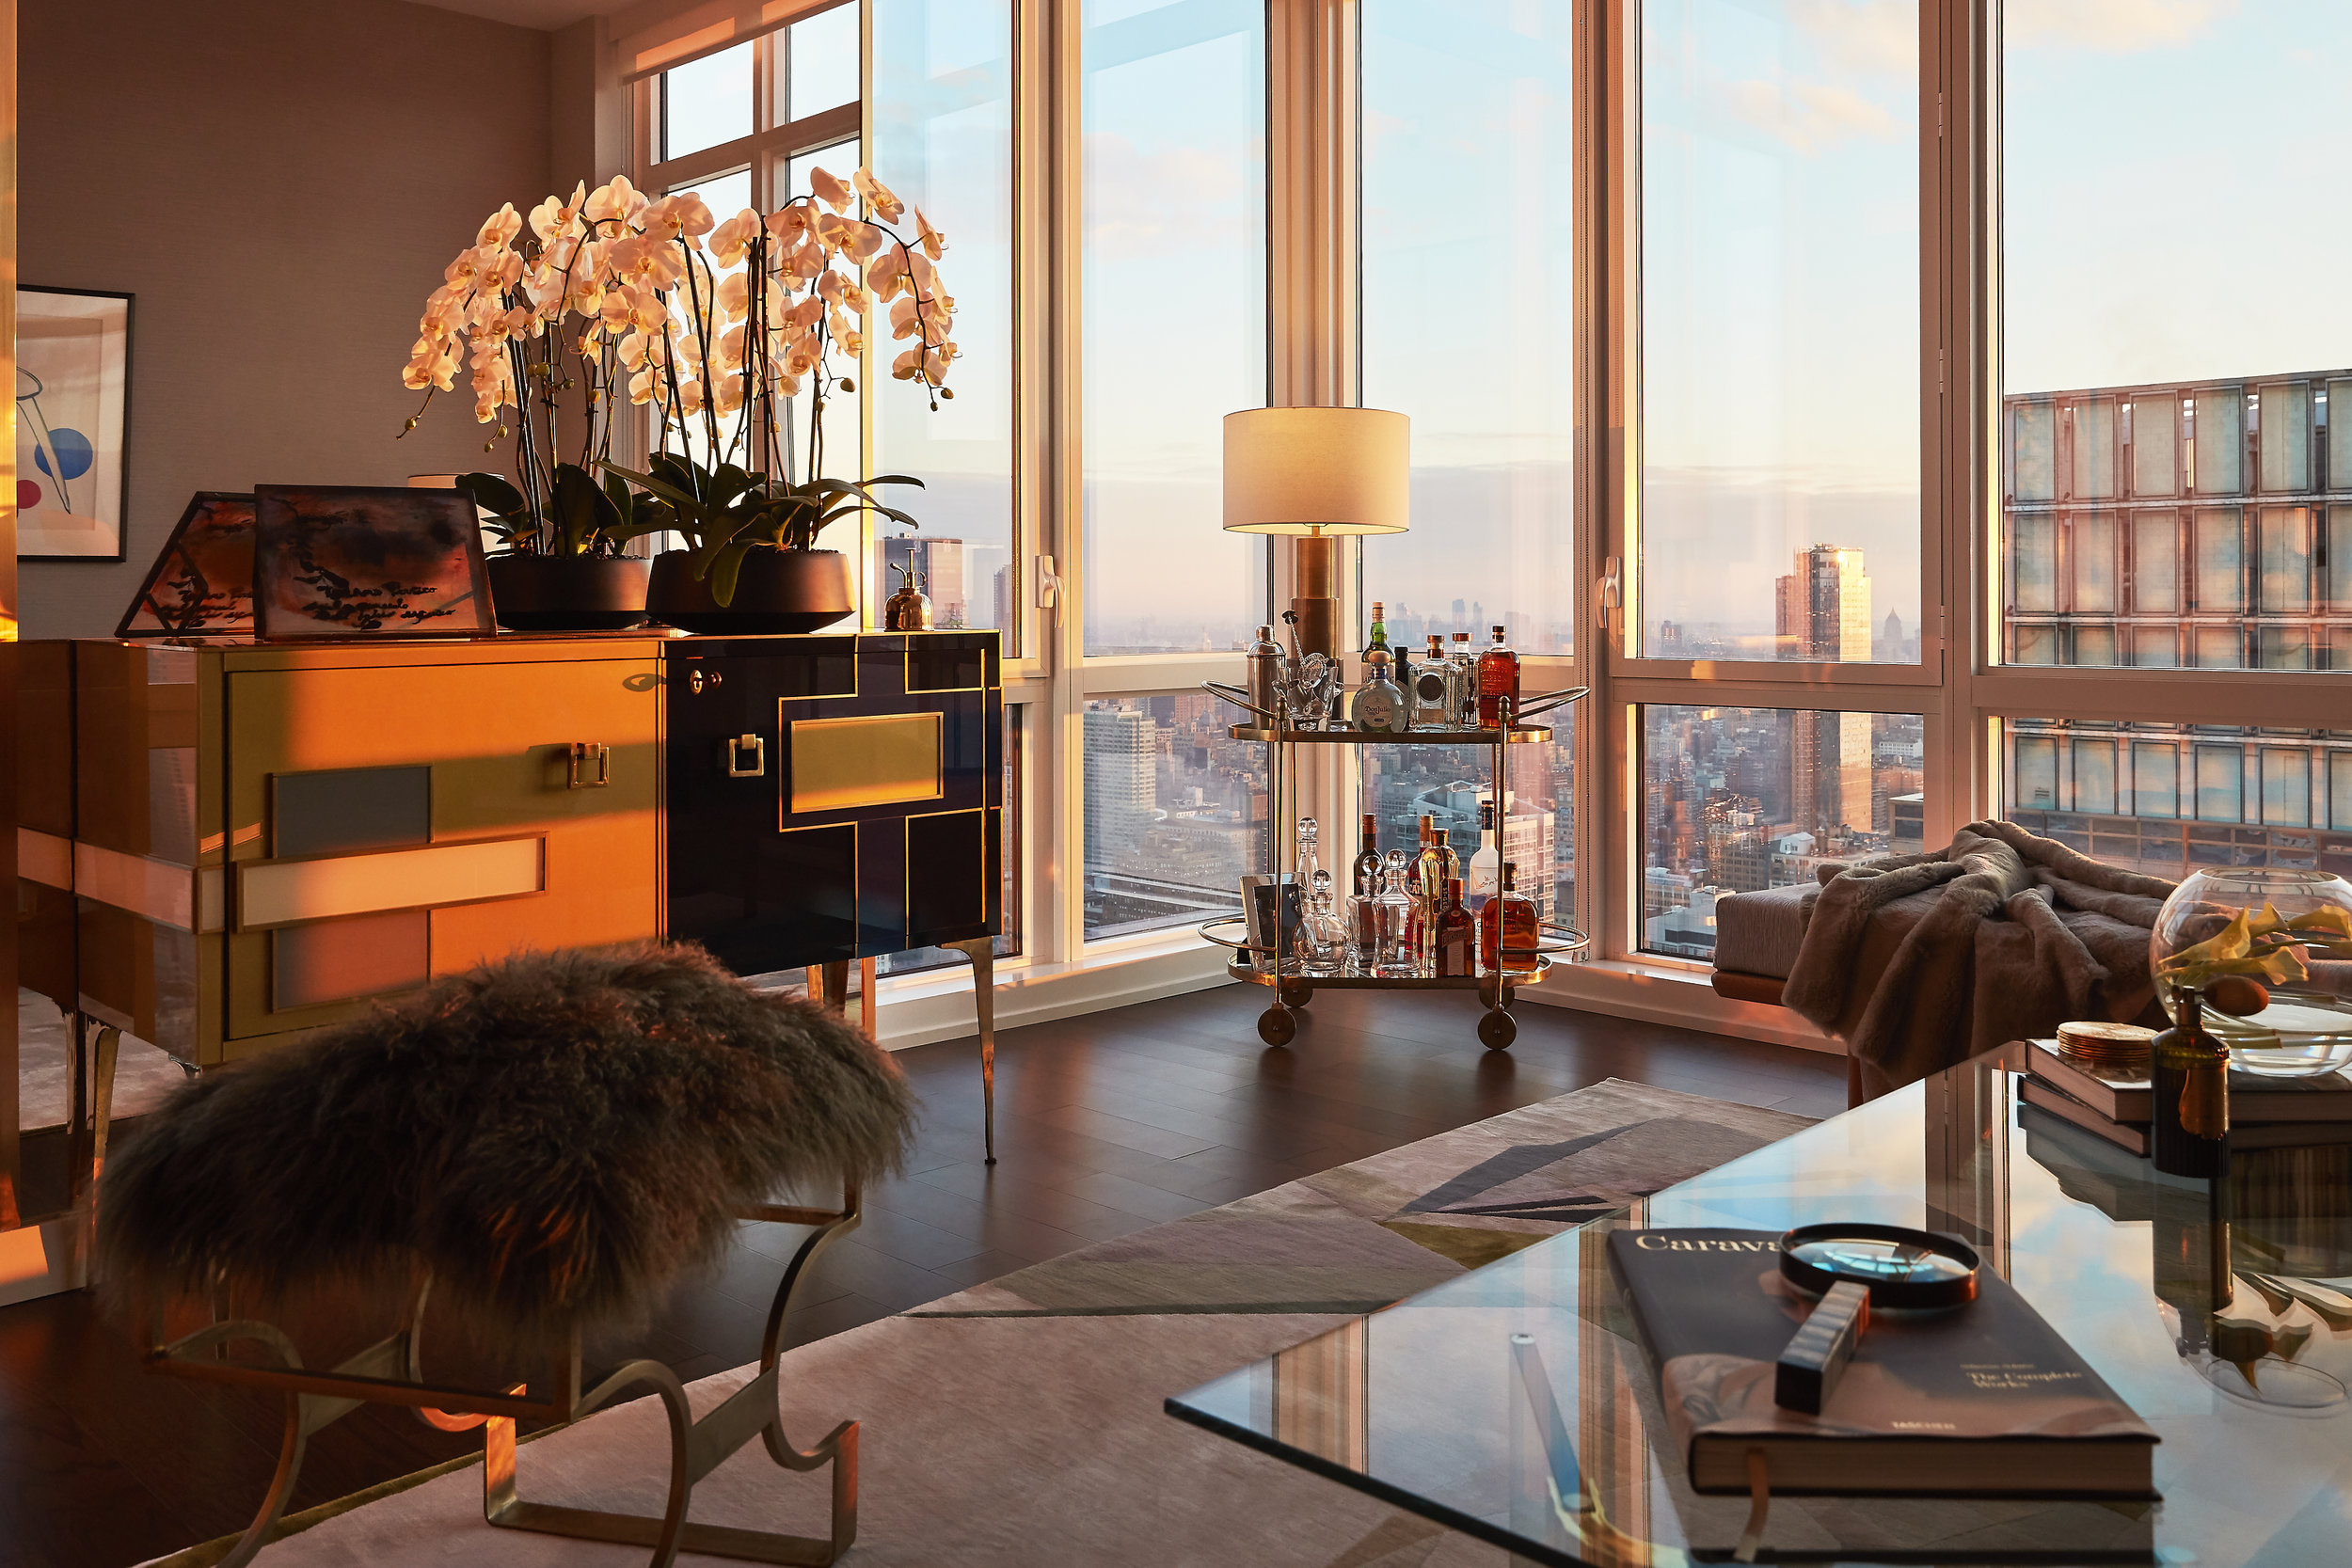 Designed by Woulfe, Sky Penthouse